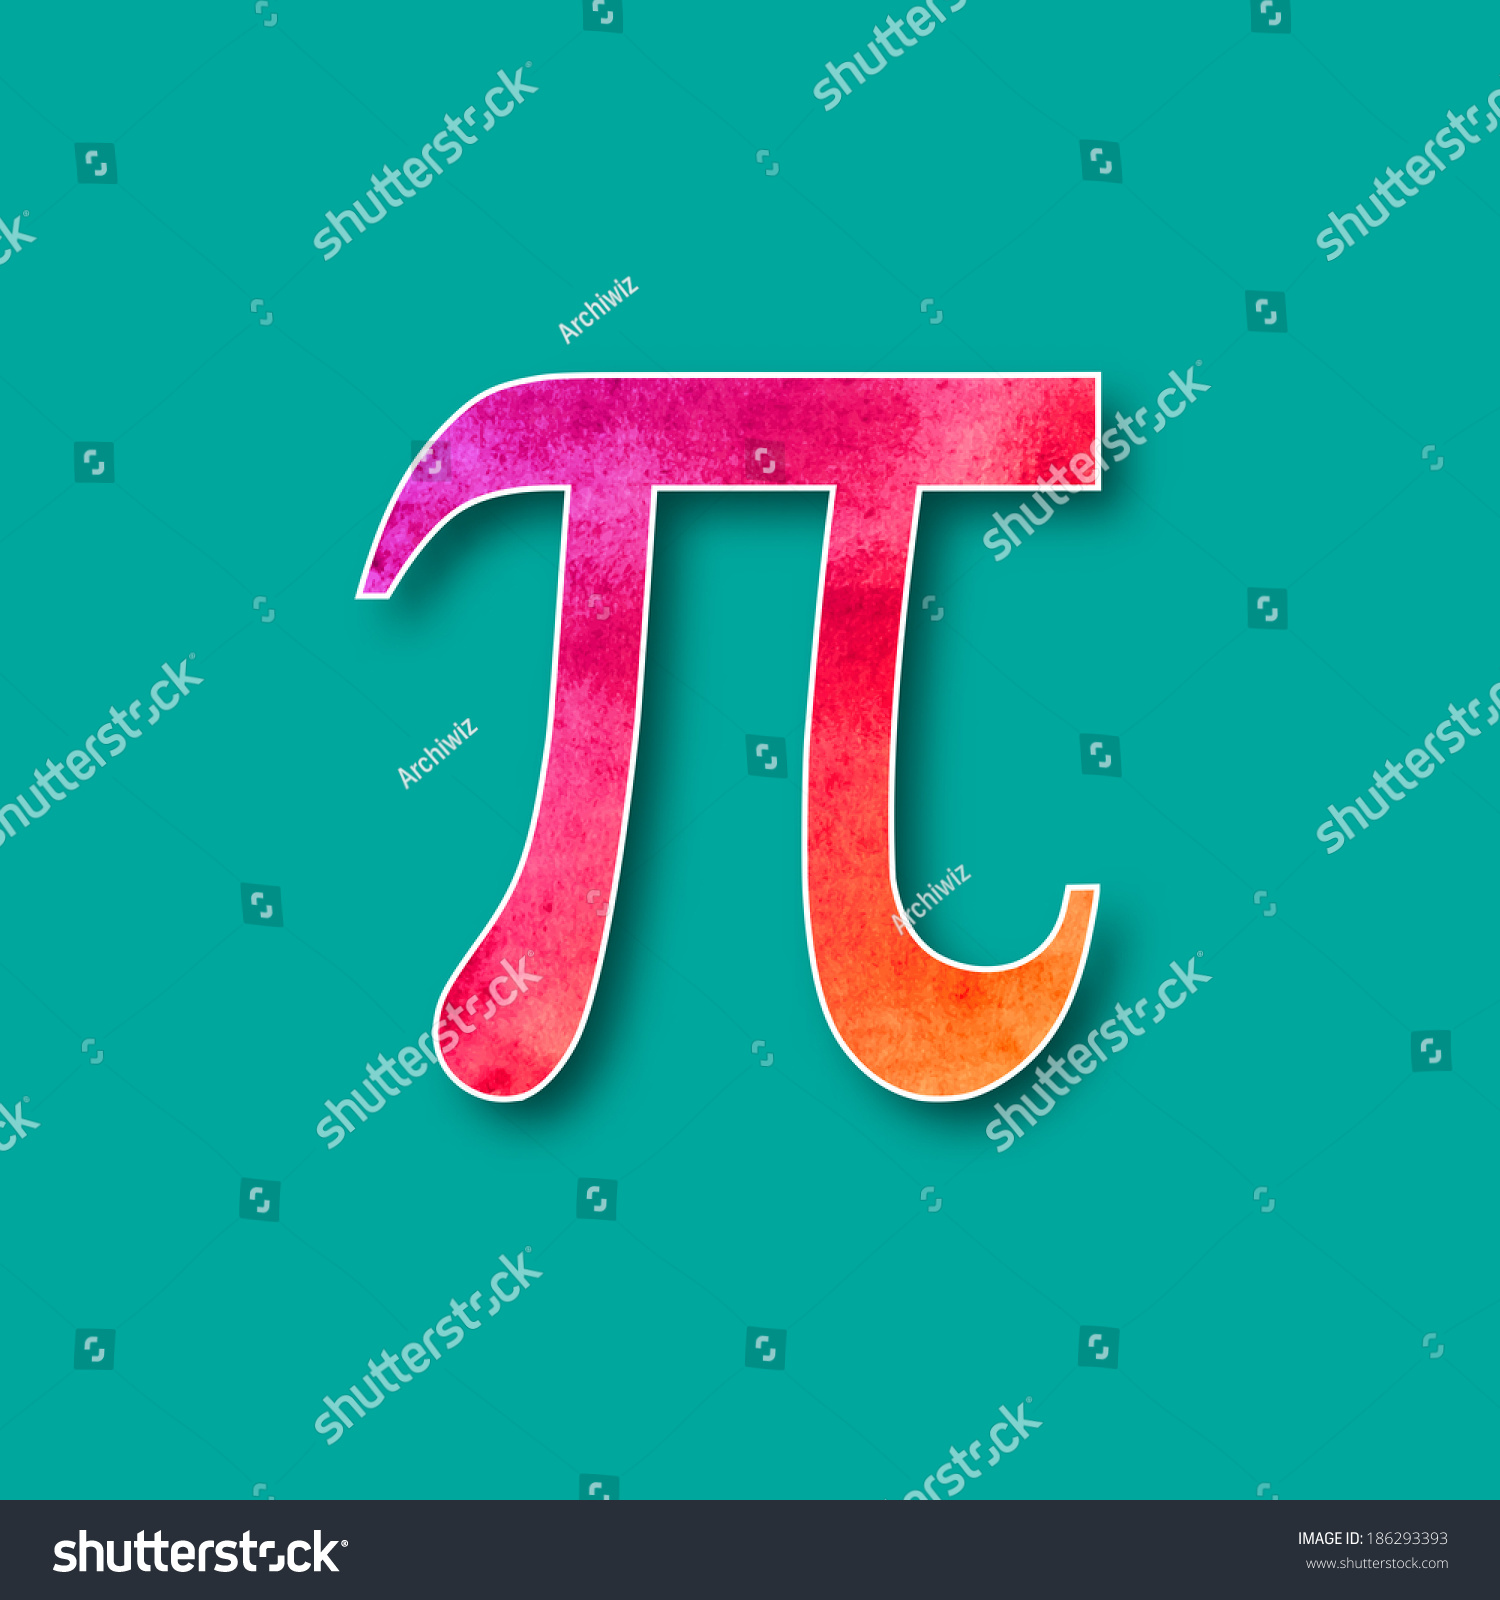 how to write pi symbol in html